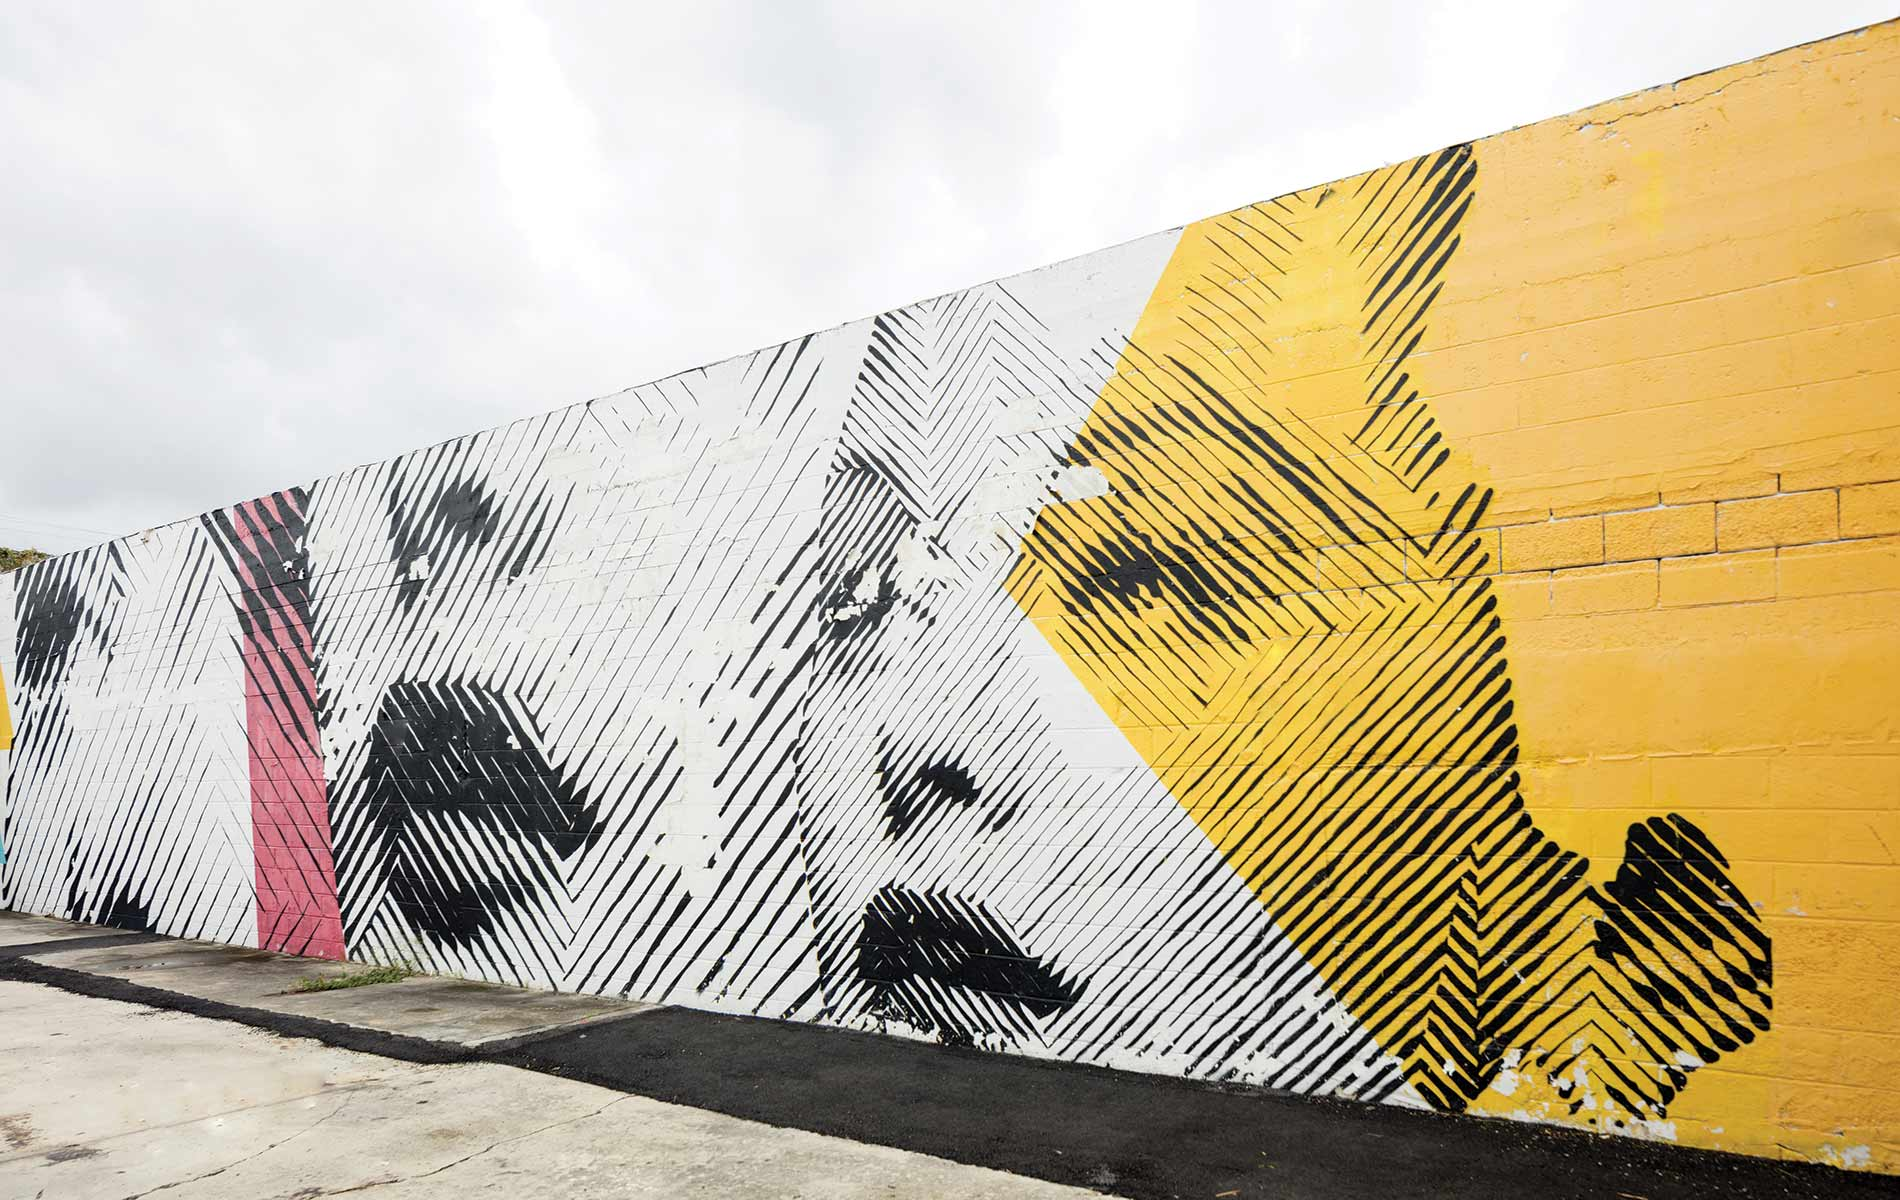 Wynwood Walls Miami Florida graffiti paint street art